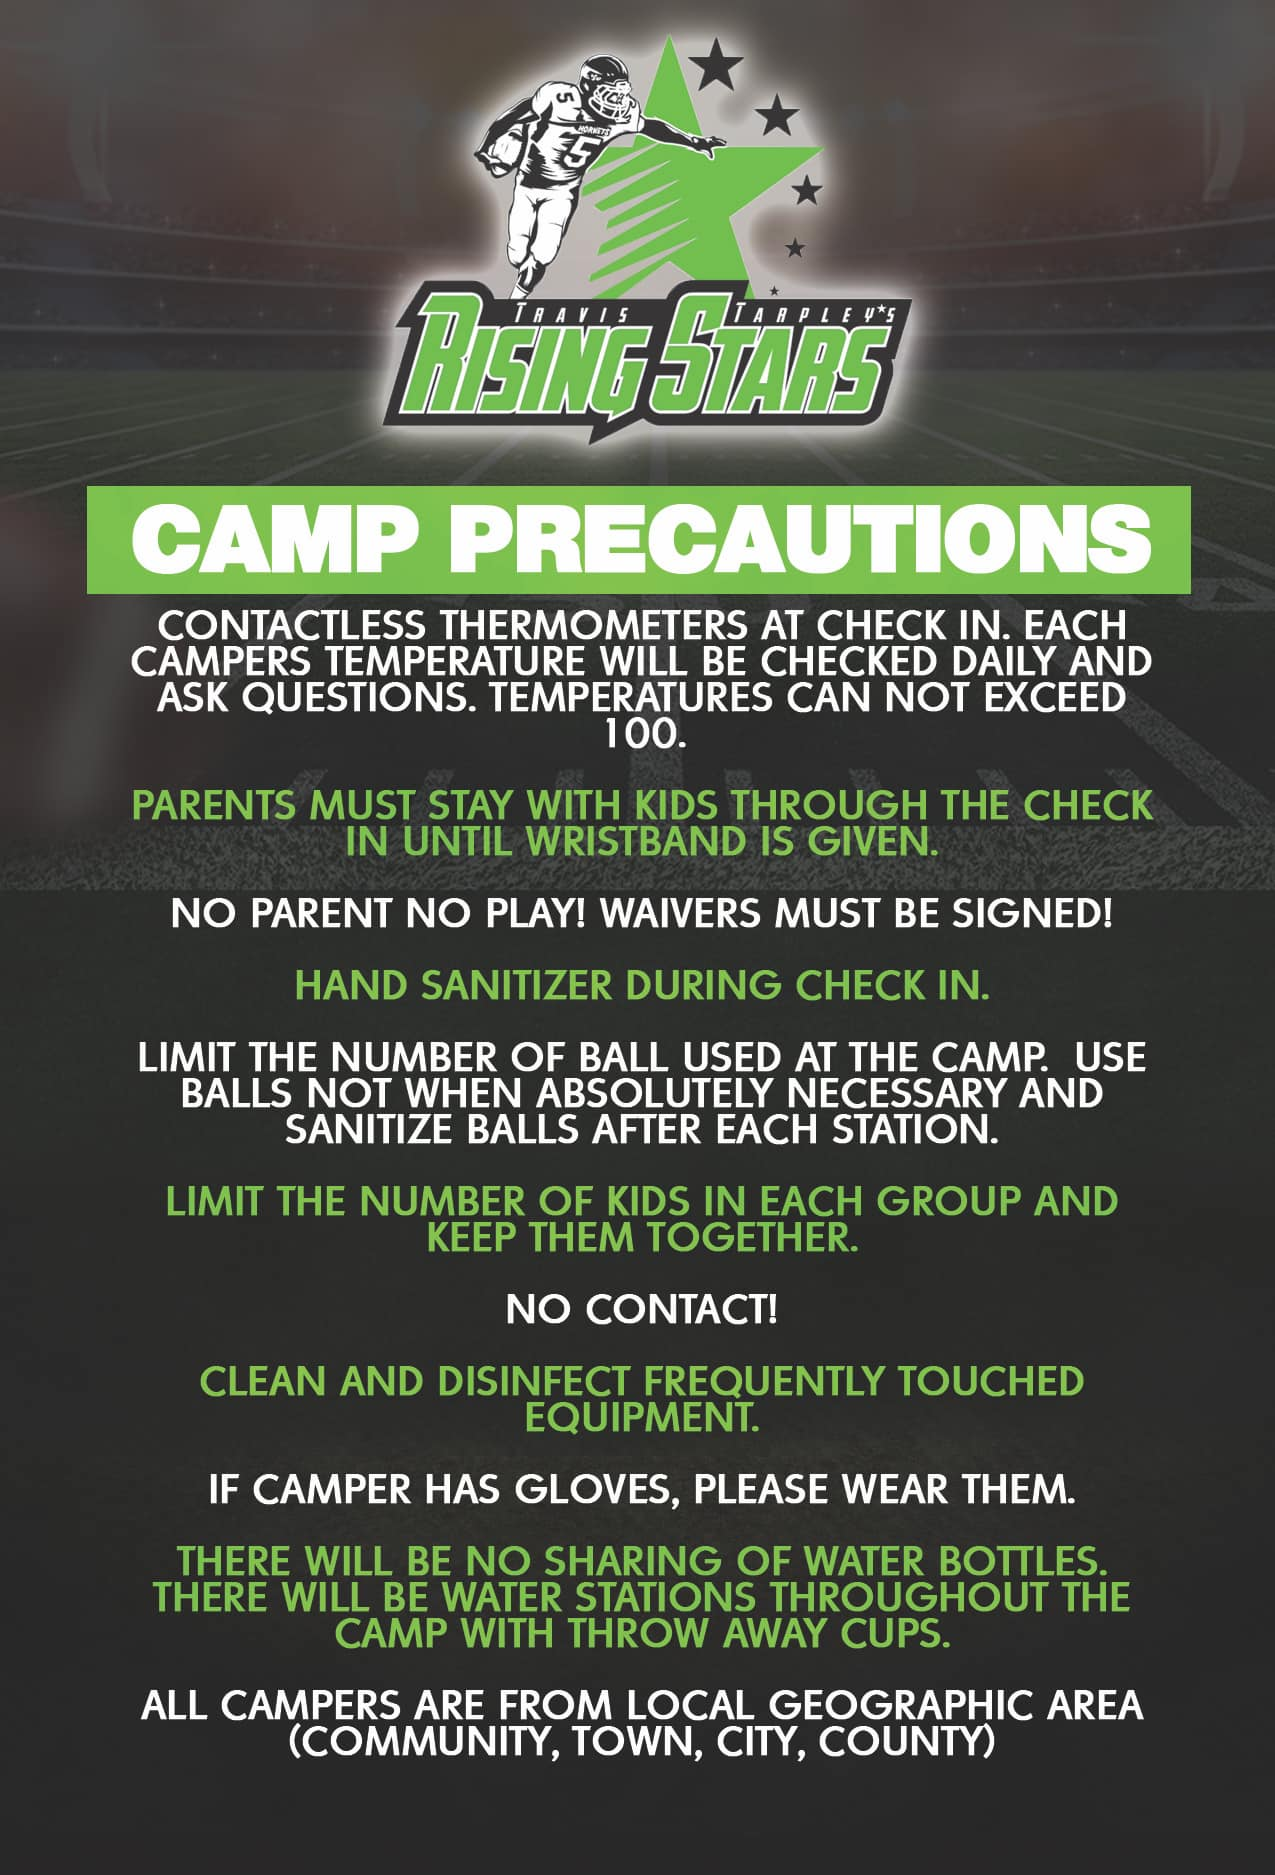 2020 Camp Precautions